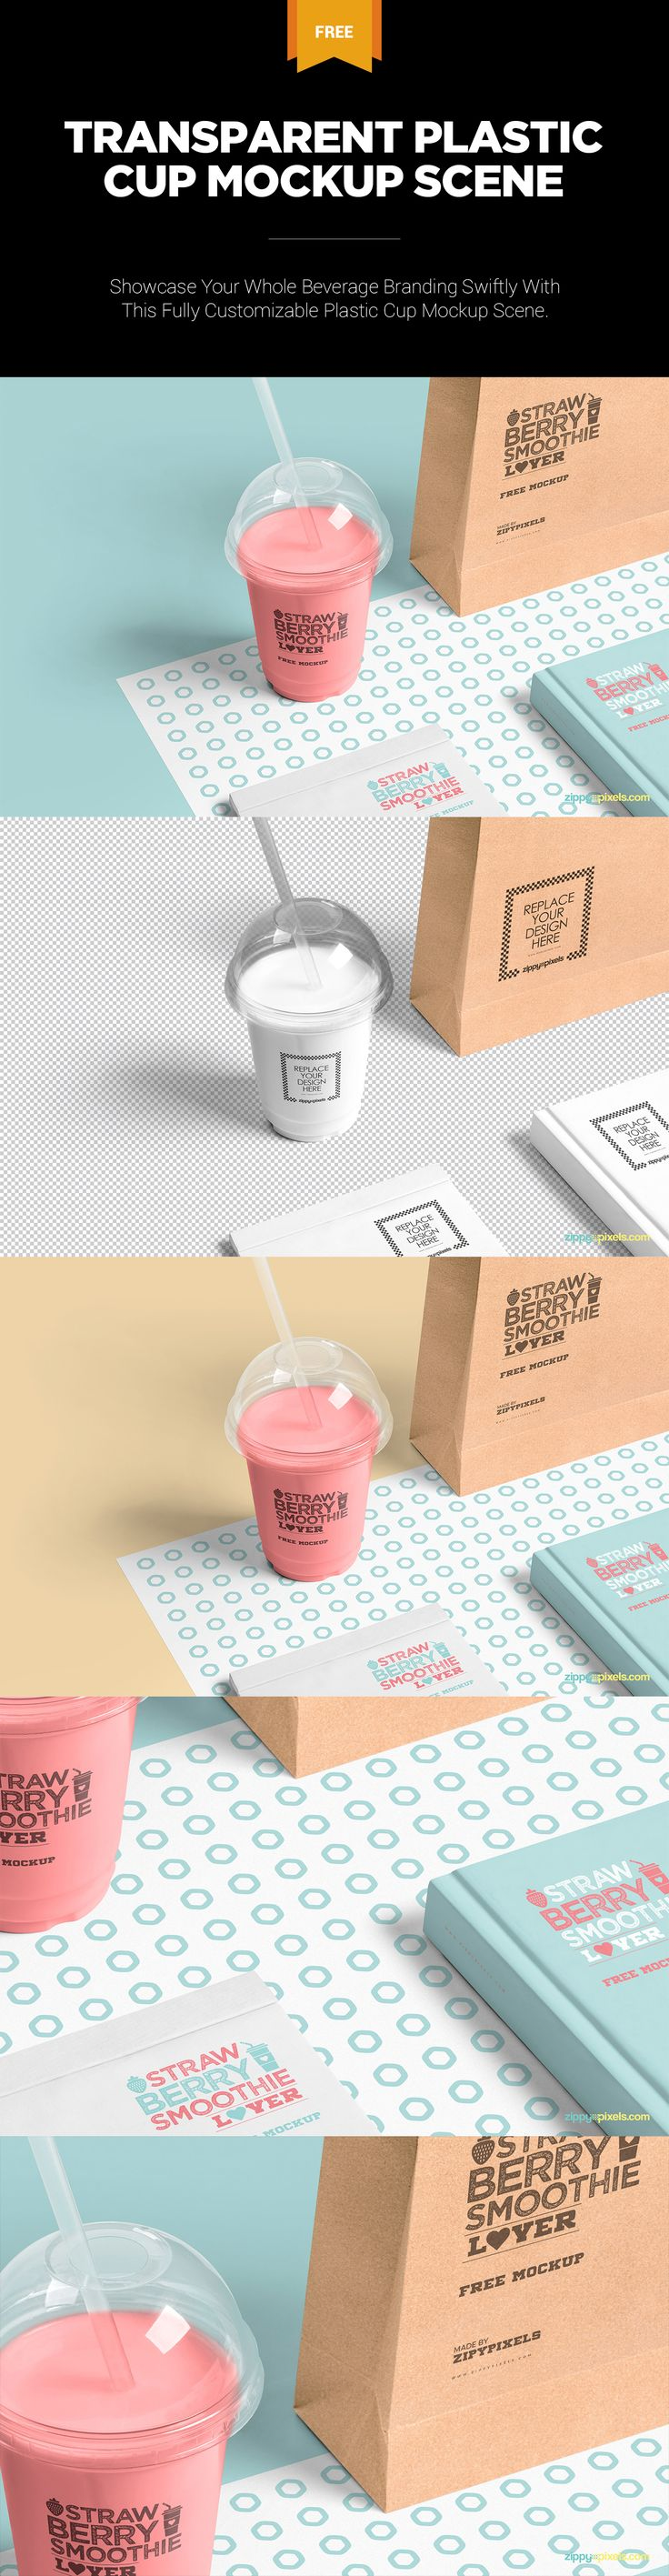 A single freebie for showcasing your whole beverage brandings in no time. #free #freebie #mockup #psd #photoshop #branding #packaging #transparent #cup #beverages #book #bag